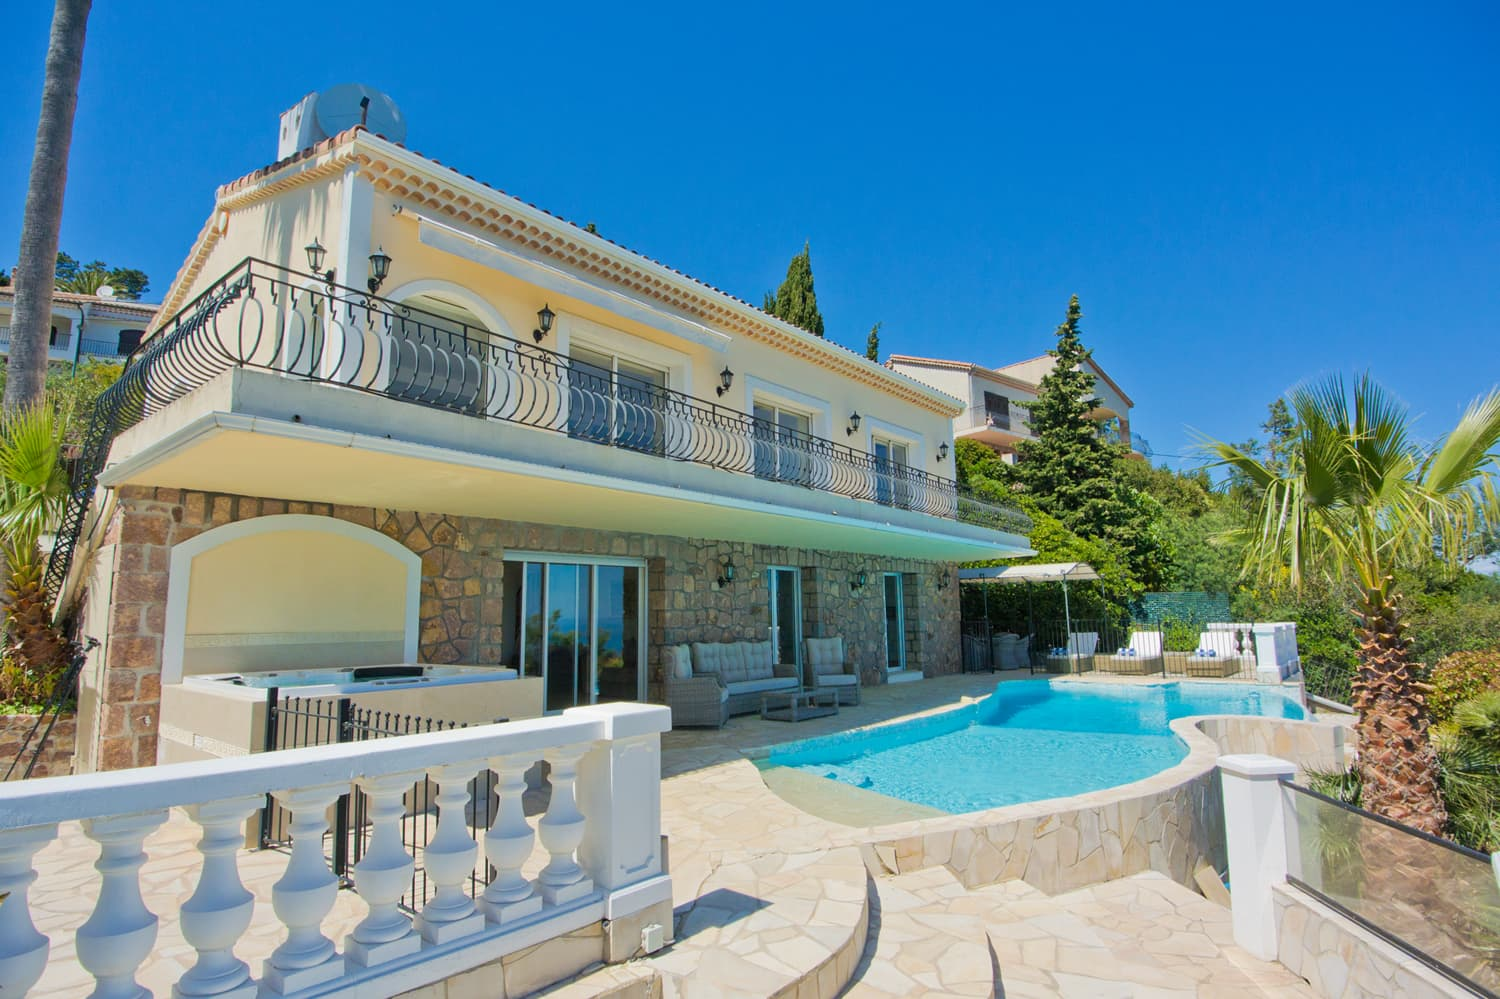 Holiday villa, Saint-Raphaël, Provence-Alpes-Côte d'Azur, with private pool